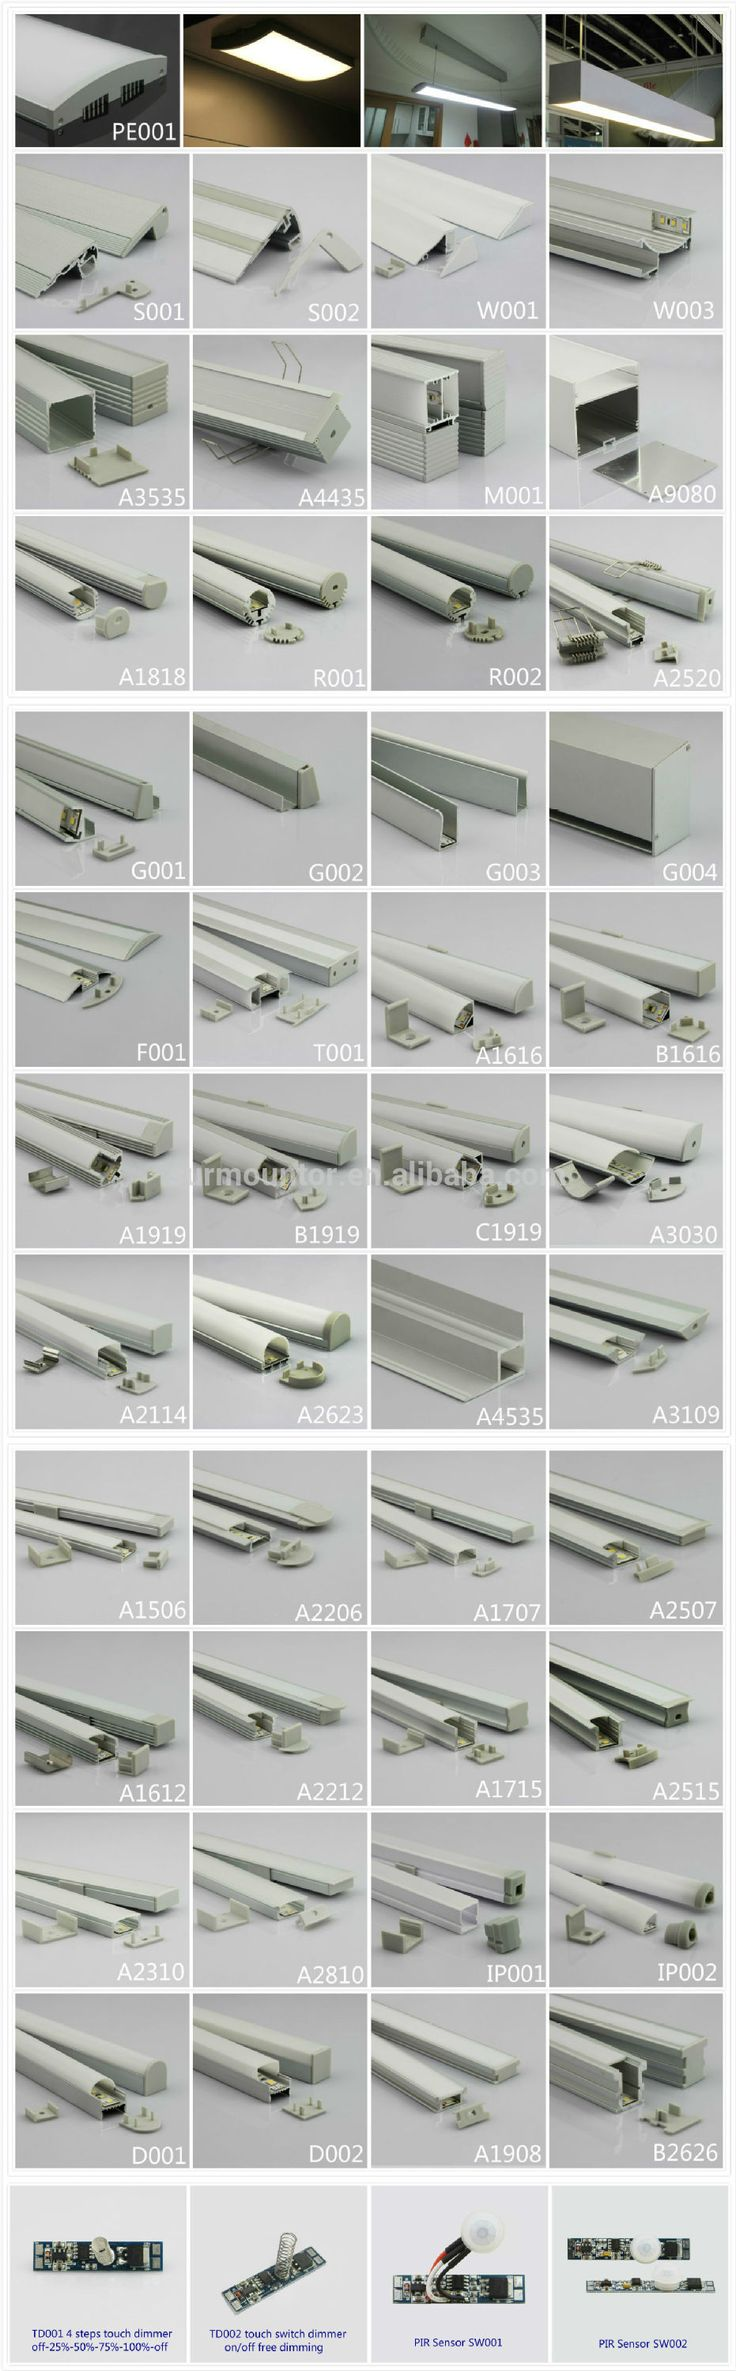 ROHS listed led strip lights stair nosing led aluminum profile, View led strip lights stair nosing led aluminum profileROHS listed led strip lights stair nosing led aluminum profile, Surmountor Product Details from Shenzhen Surmountor Lighting Co., Limited on Alibaba.com